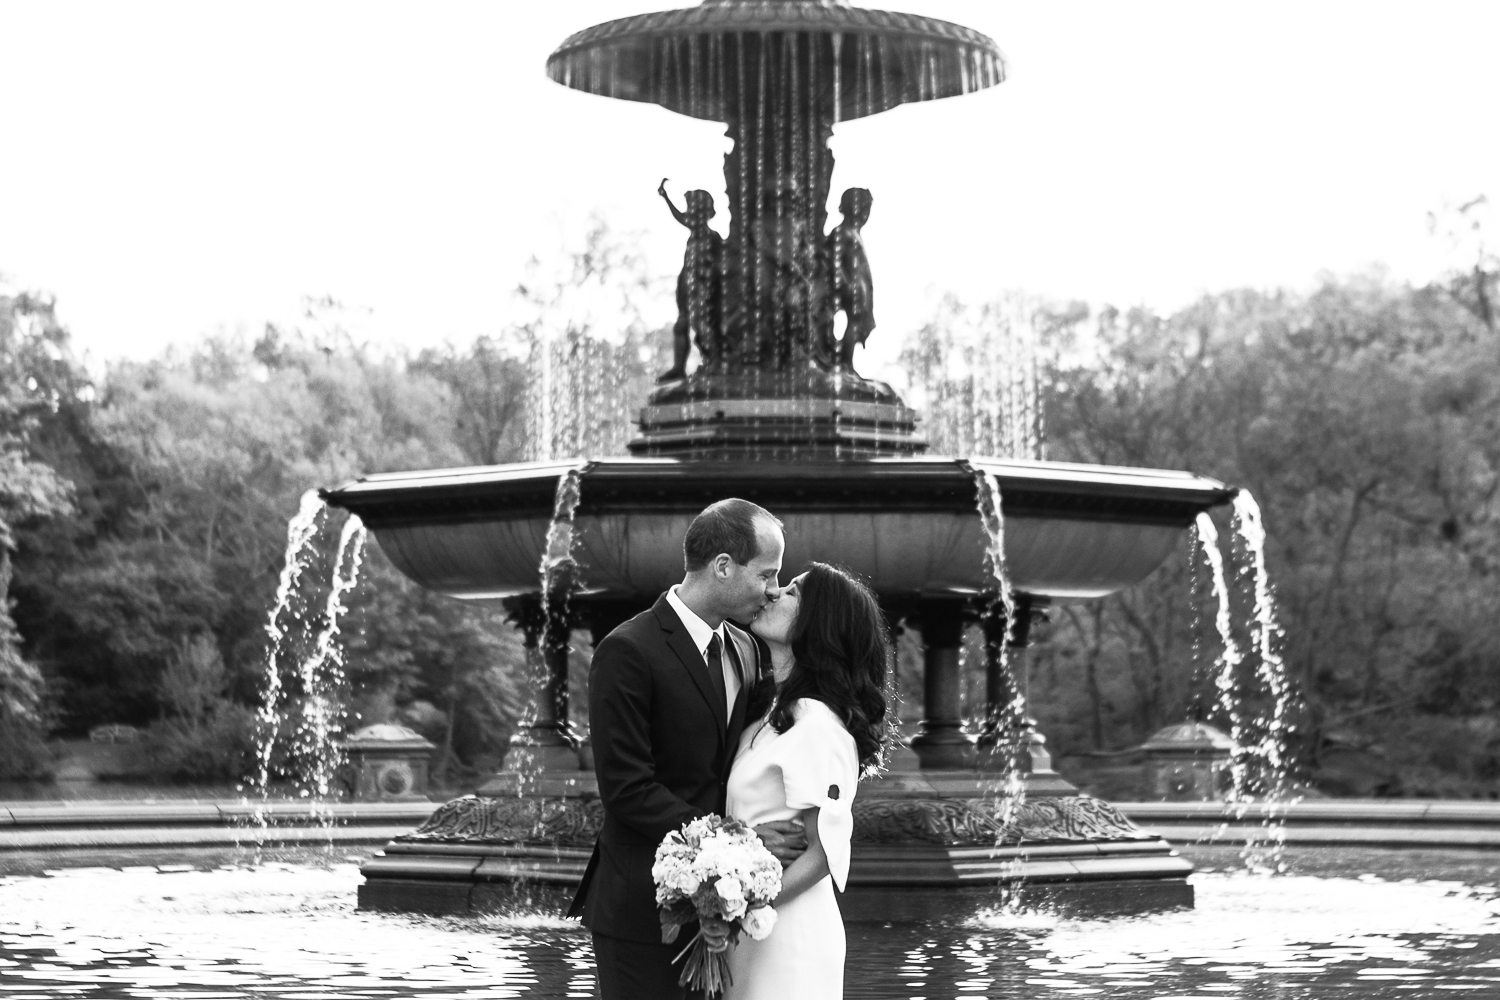 Bride and groom taking wedding photos at Bethesda Fountain in Central Park. | Early Morning Sunrise Central Park Elopement in New York City.